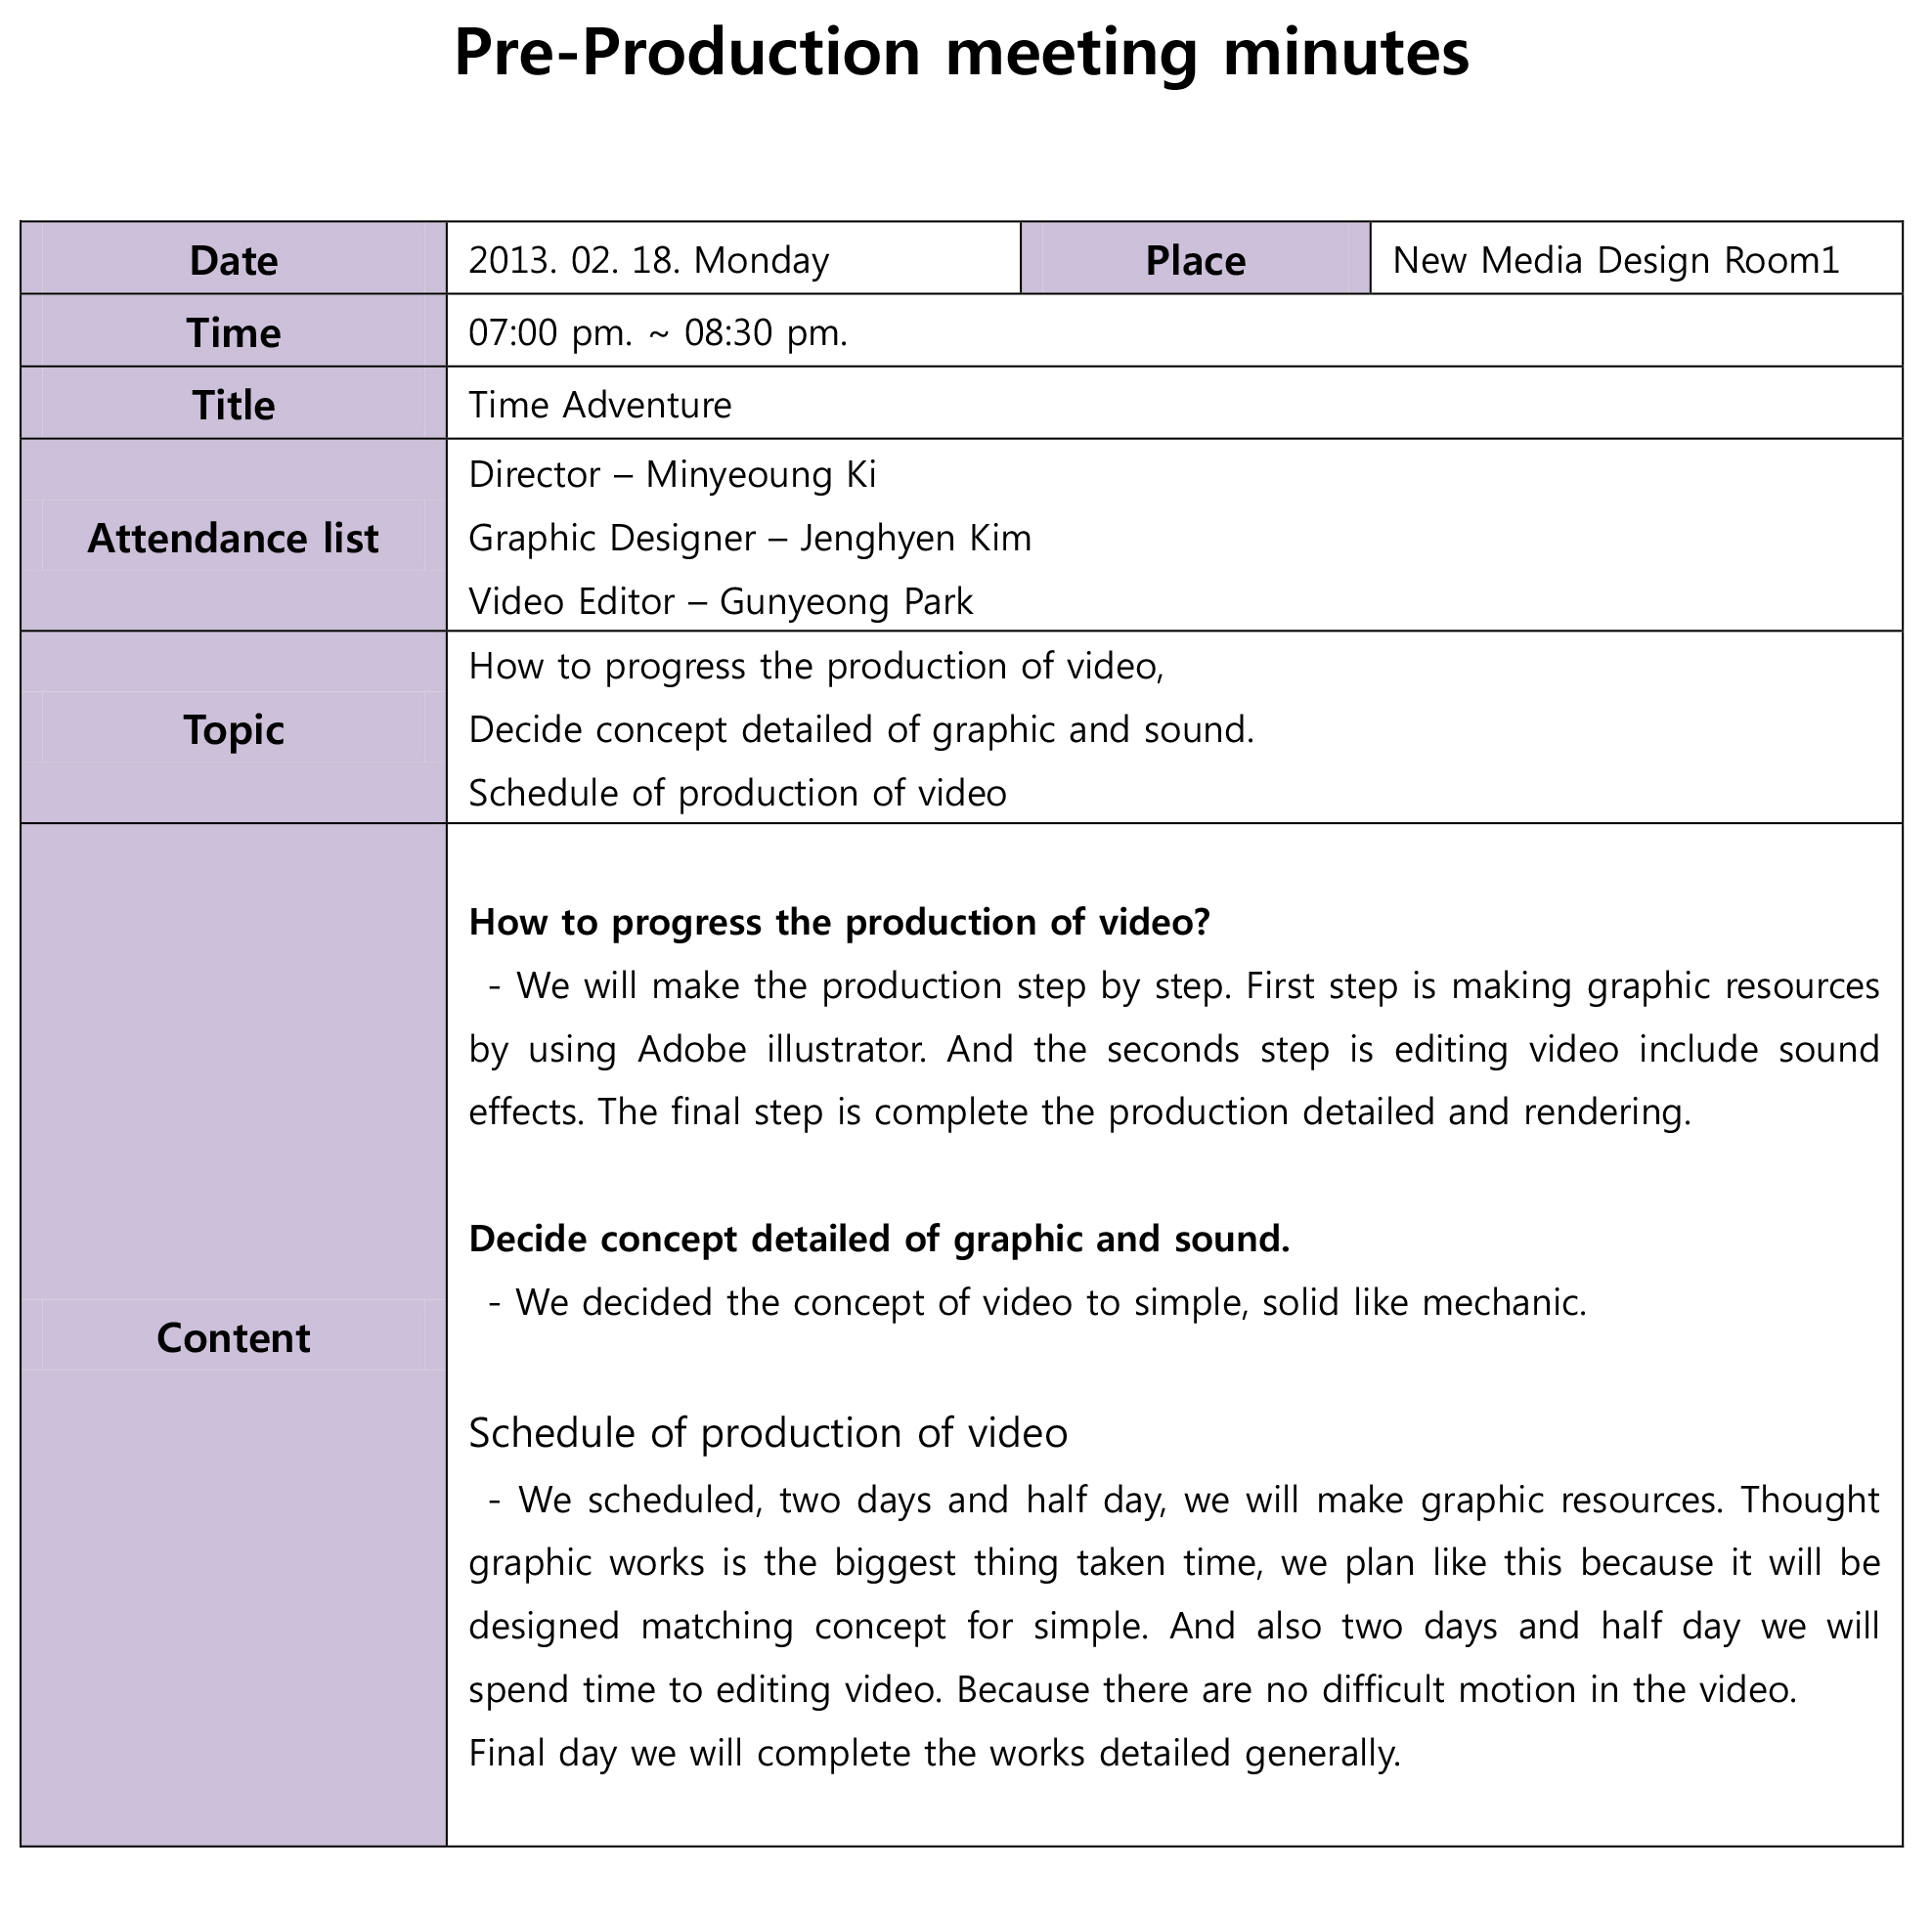 how to document meeting minutes - Ideal.vistalist.co